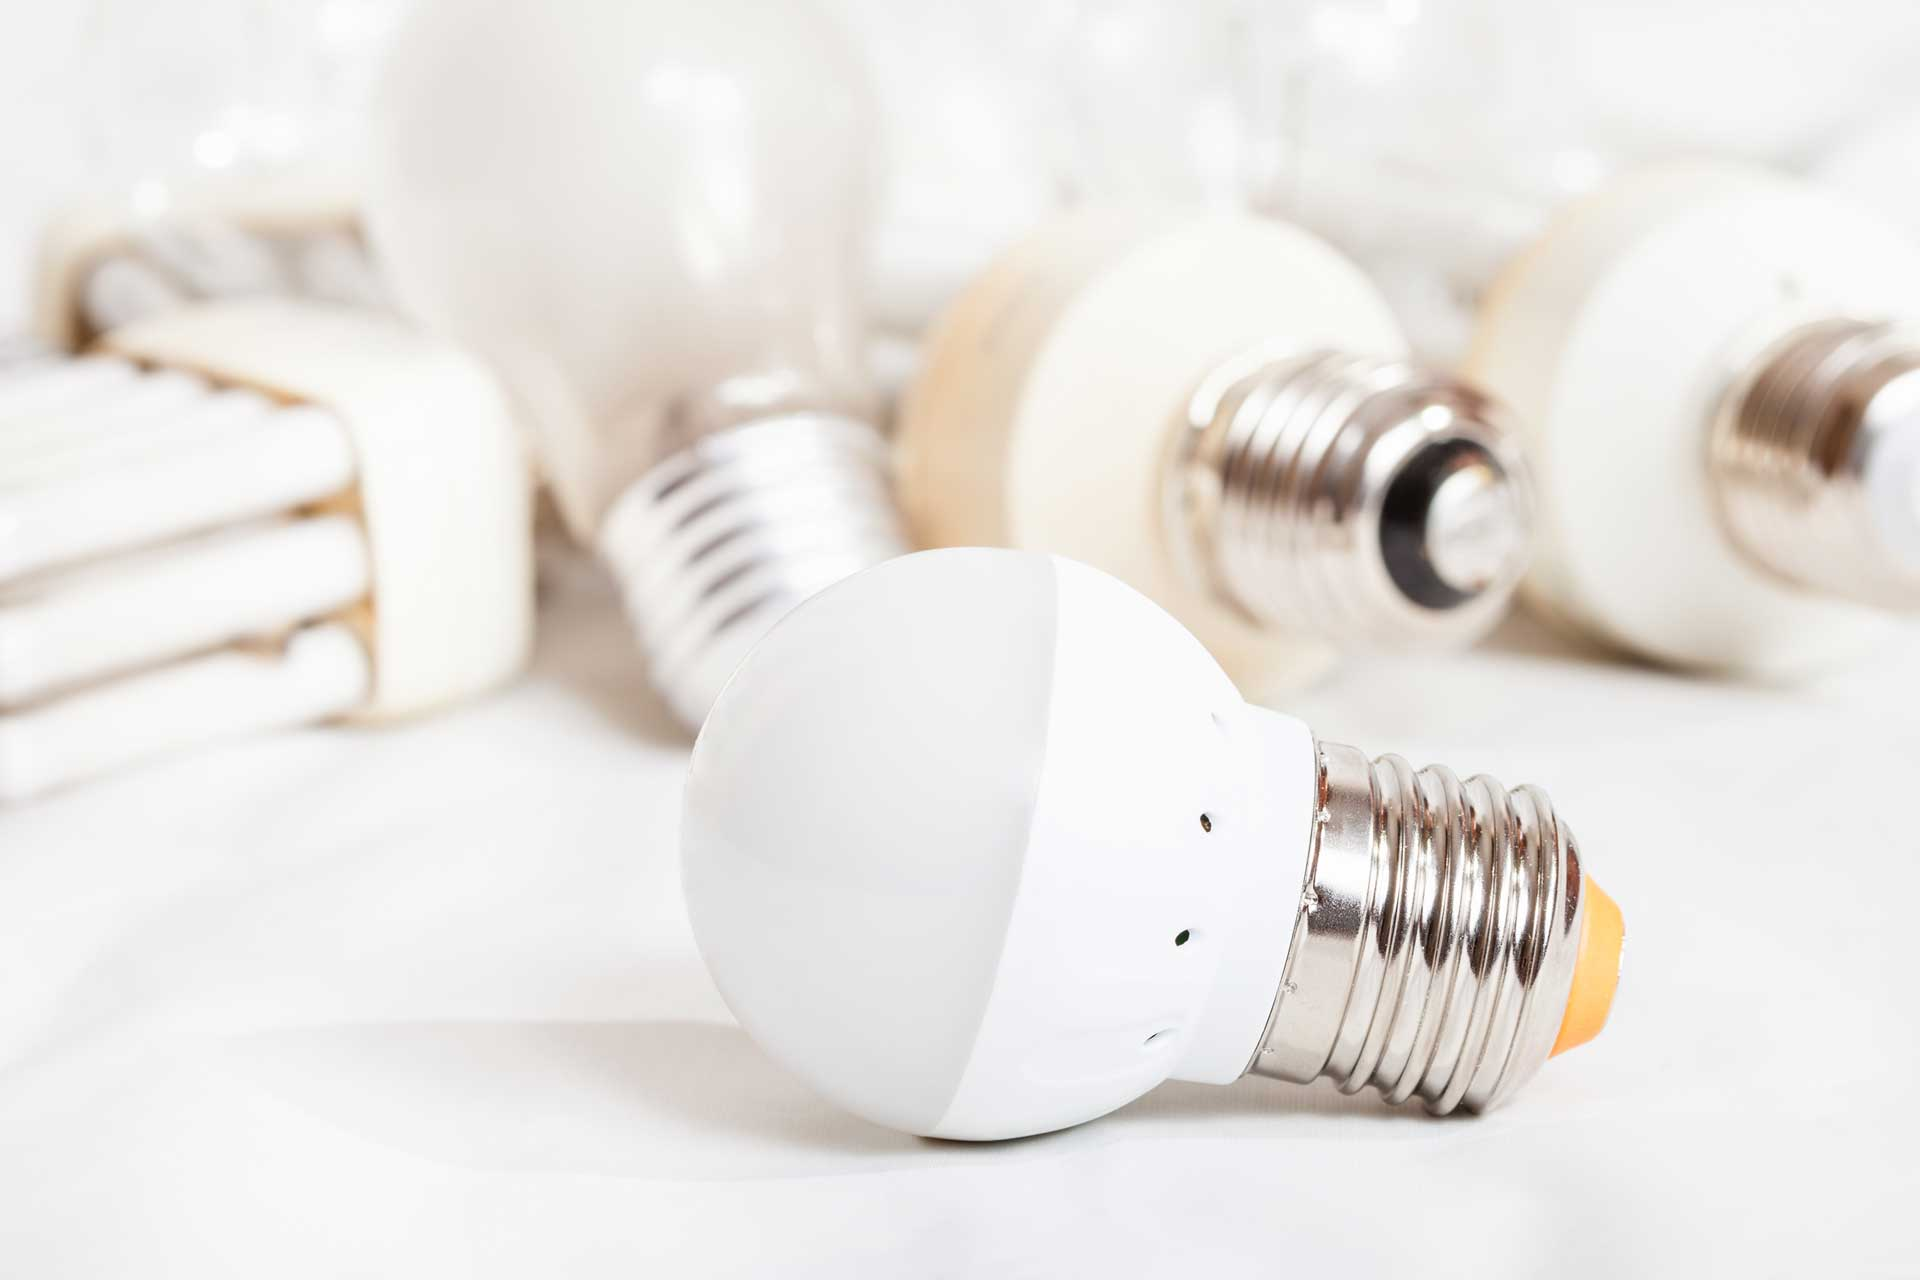 about-LED-lighting-from-SESCOS-Leesburg-LED-Installation-Professionals